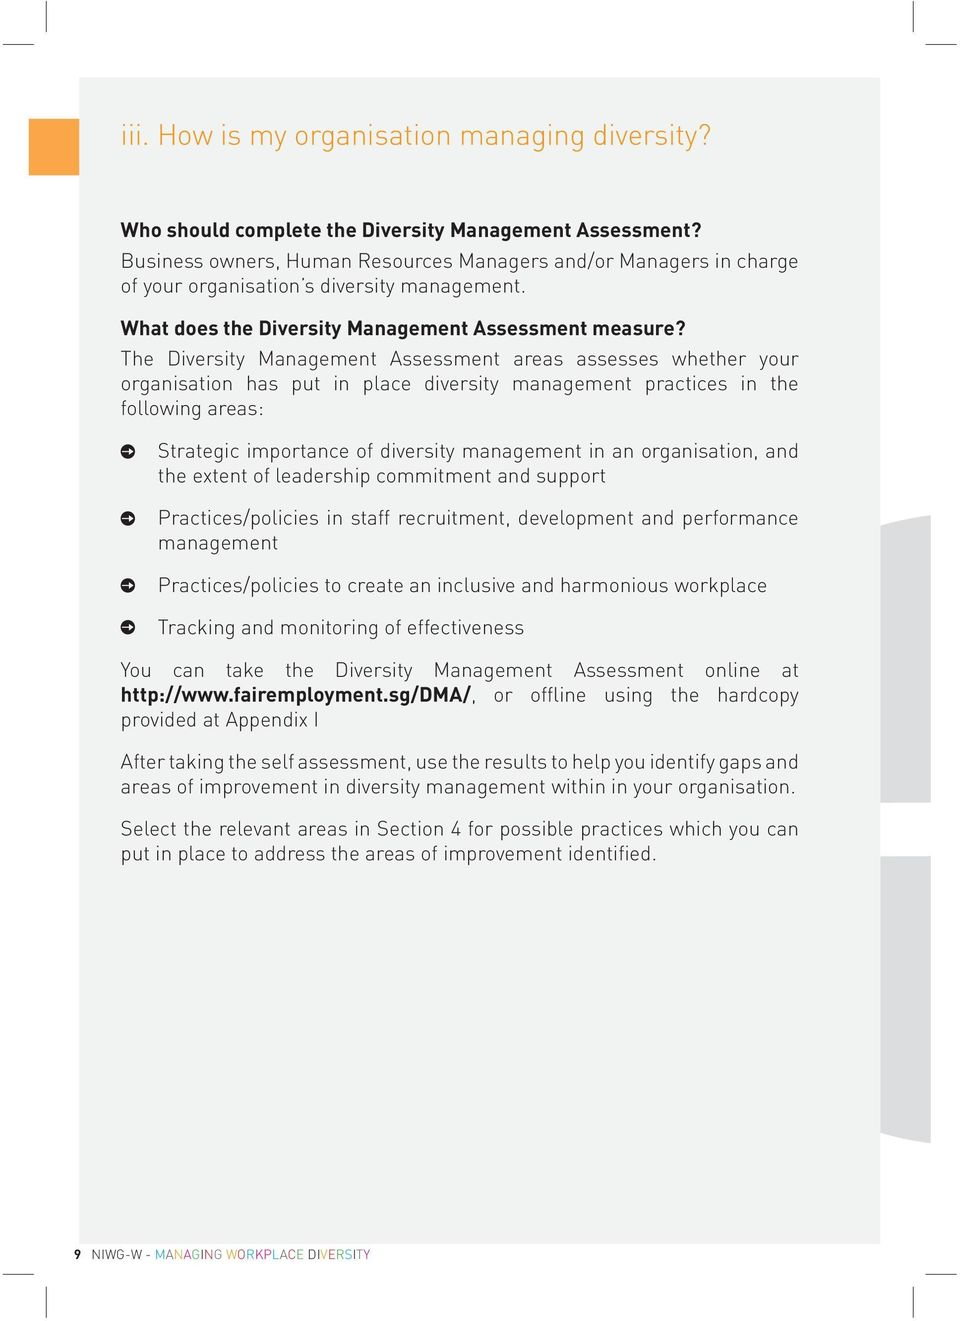 The Diversity Management Assessment areas assesses whether your organisation has put in place diversity management practices in the following areas: Strategic importance of diversity management in an